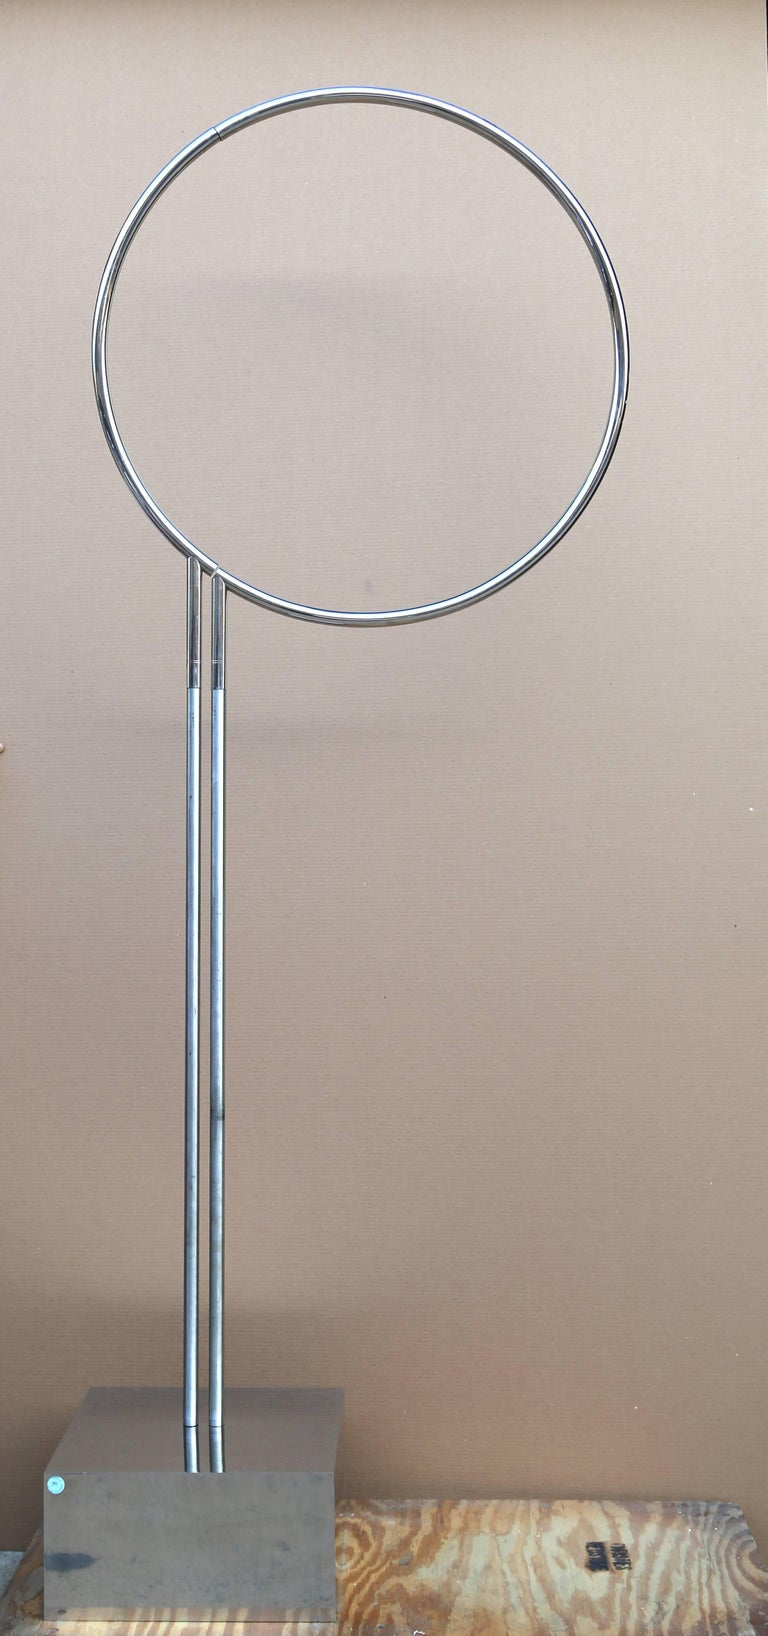 Agam Yaacov  Abstract Sculpture - Cercle Haut, Large Standing sculpture by Yaacov Agam